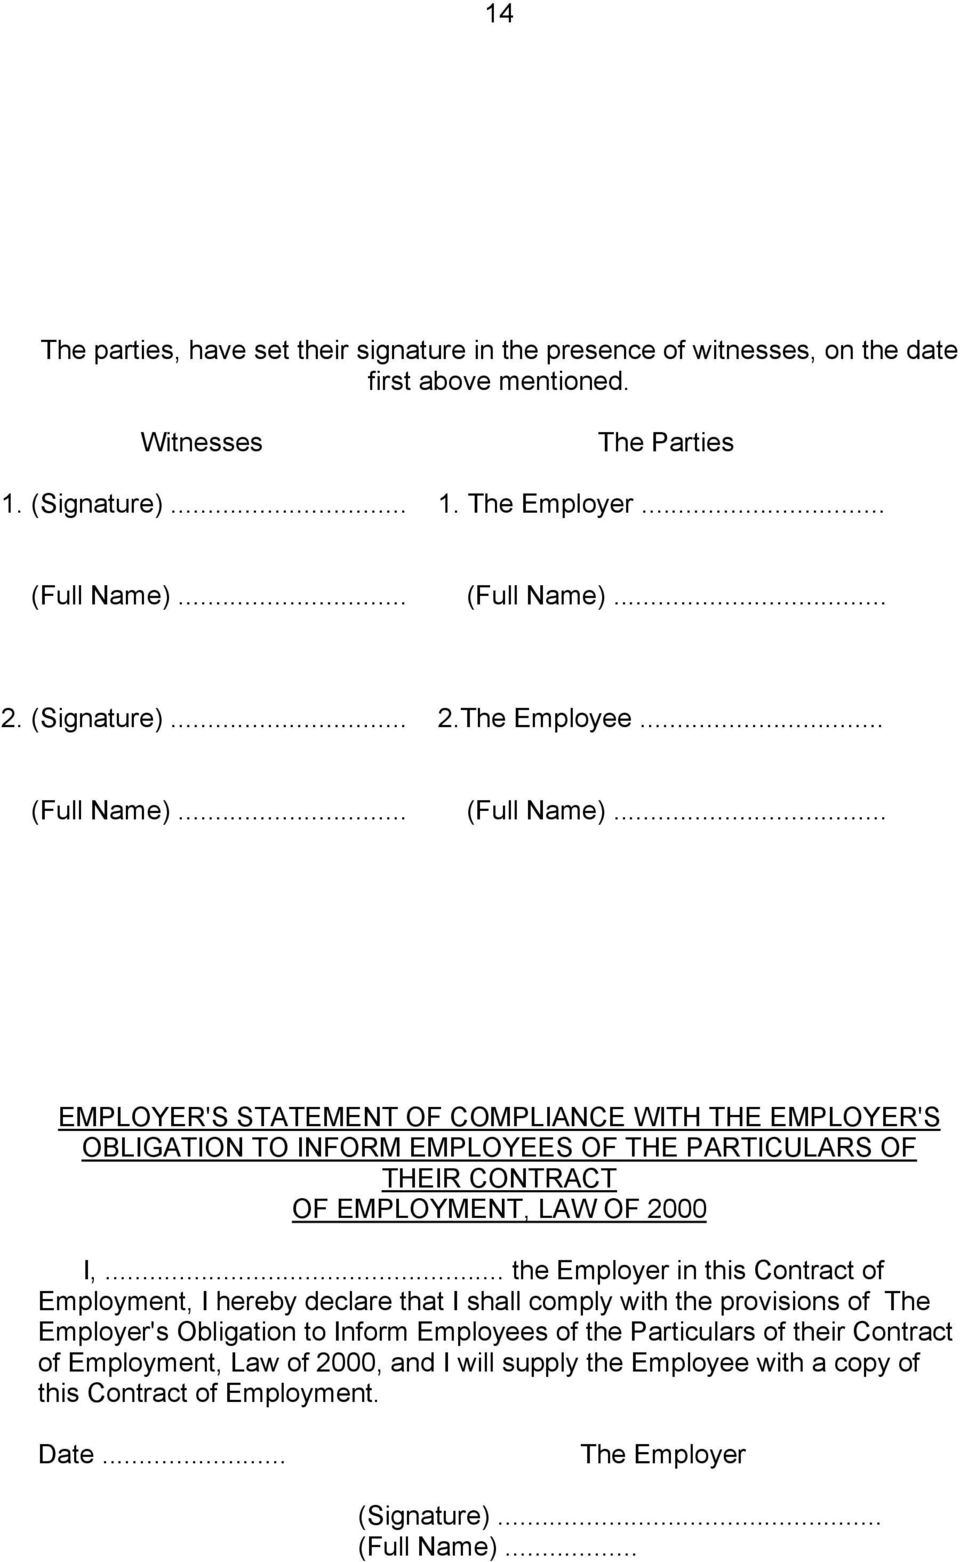 .. (Full Name)... EMPLOYER'S STATEMENT OF COMPLIANCE WITH THE EMPLOYER'S OBLIGATION TO INFORM EMPLOYEES OF THE PARTICULARS OF THEIR CONTRACT OF EMPLOYMENT, LAW OF 2000 I,.